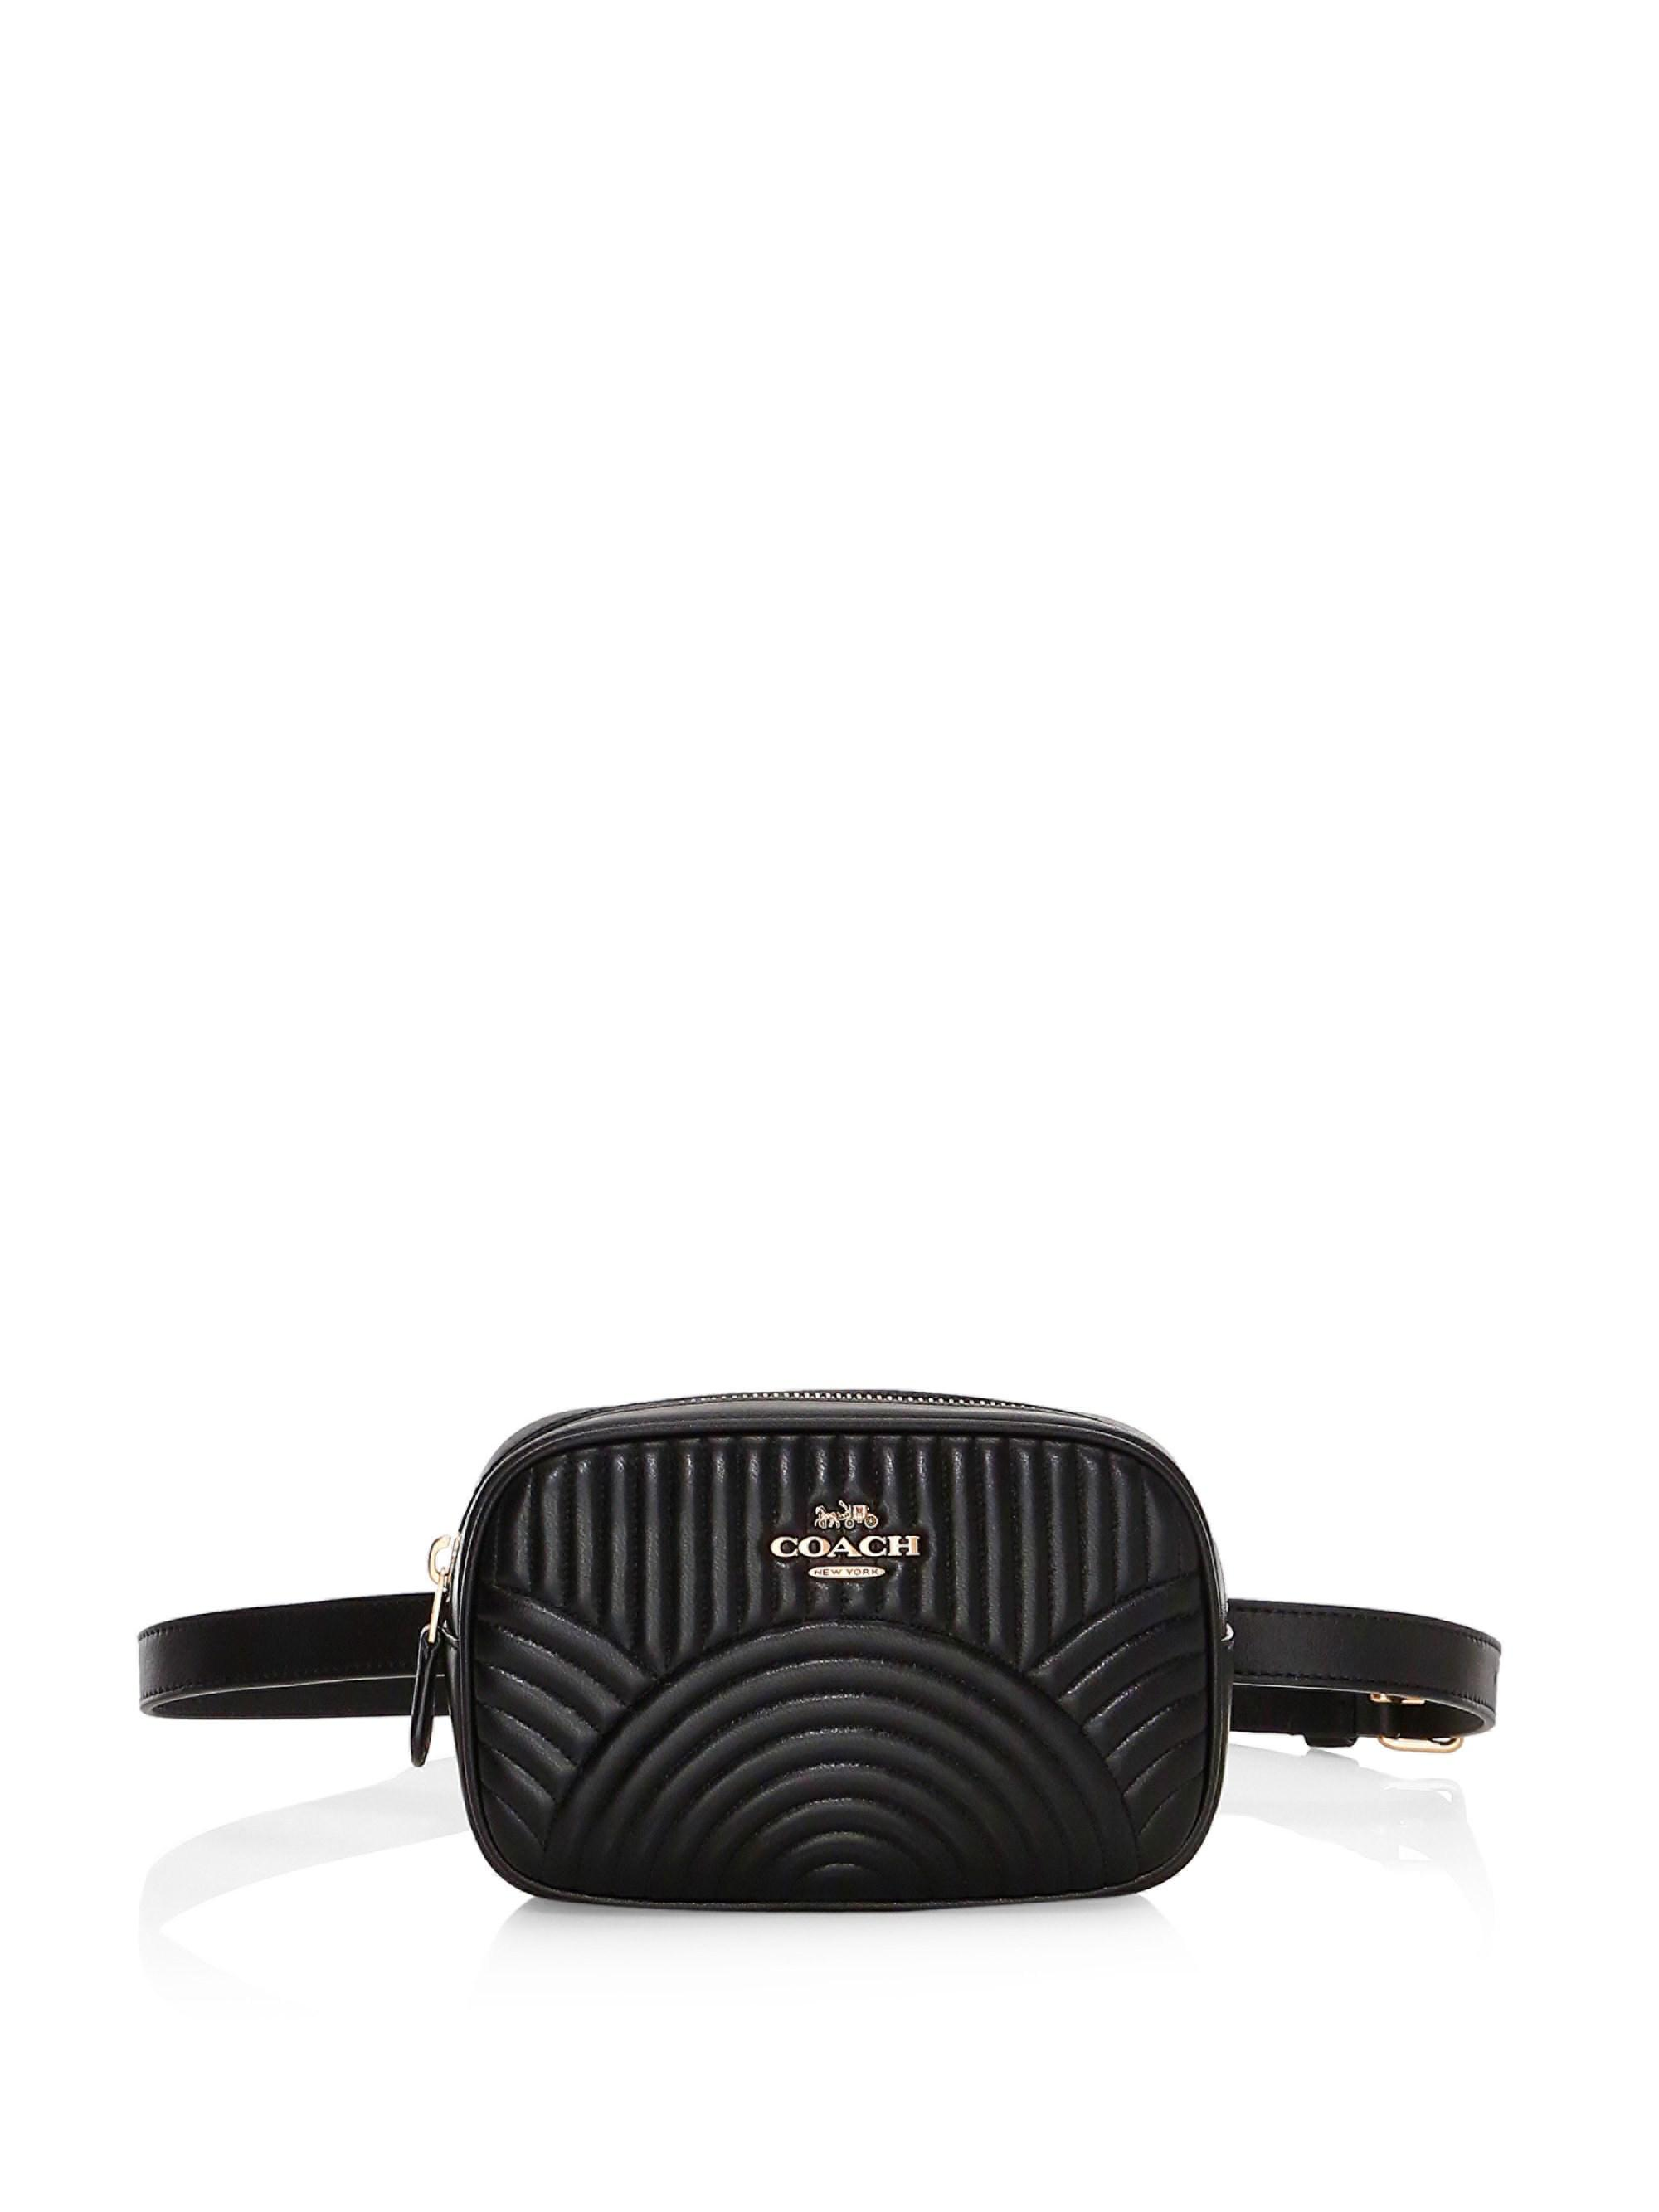 43724d7f3a764 COACH Deco Quilted Dorsay Leather Belt Bag in Black - Lyst